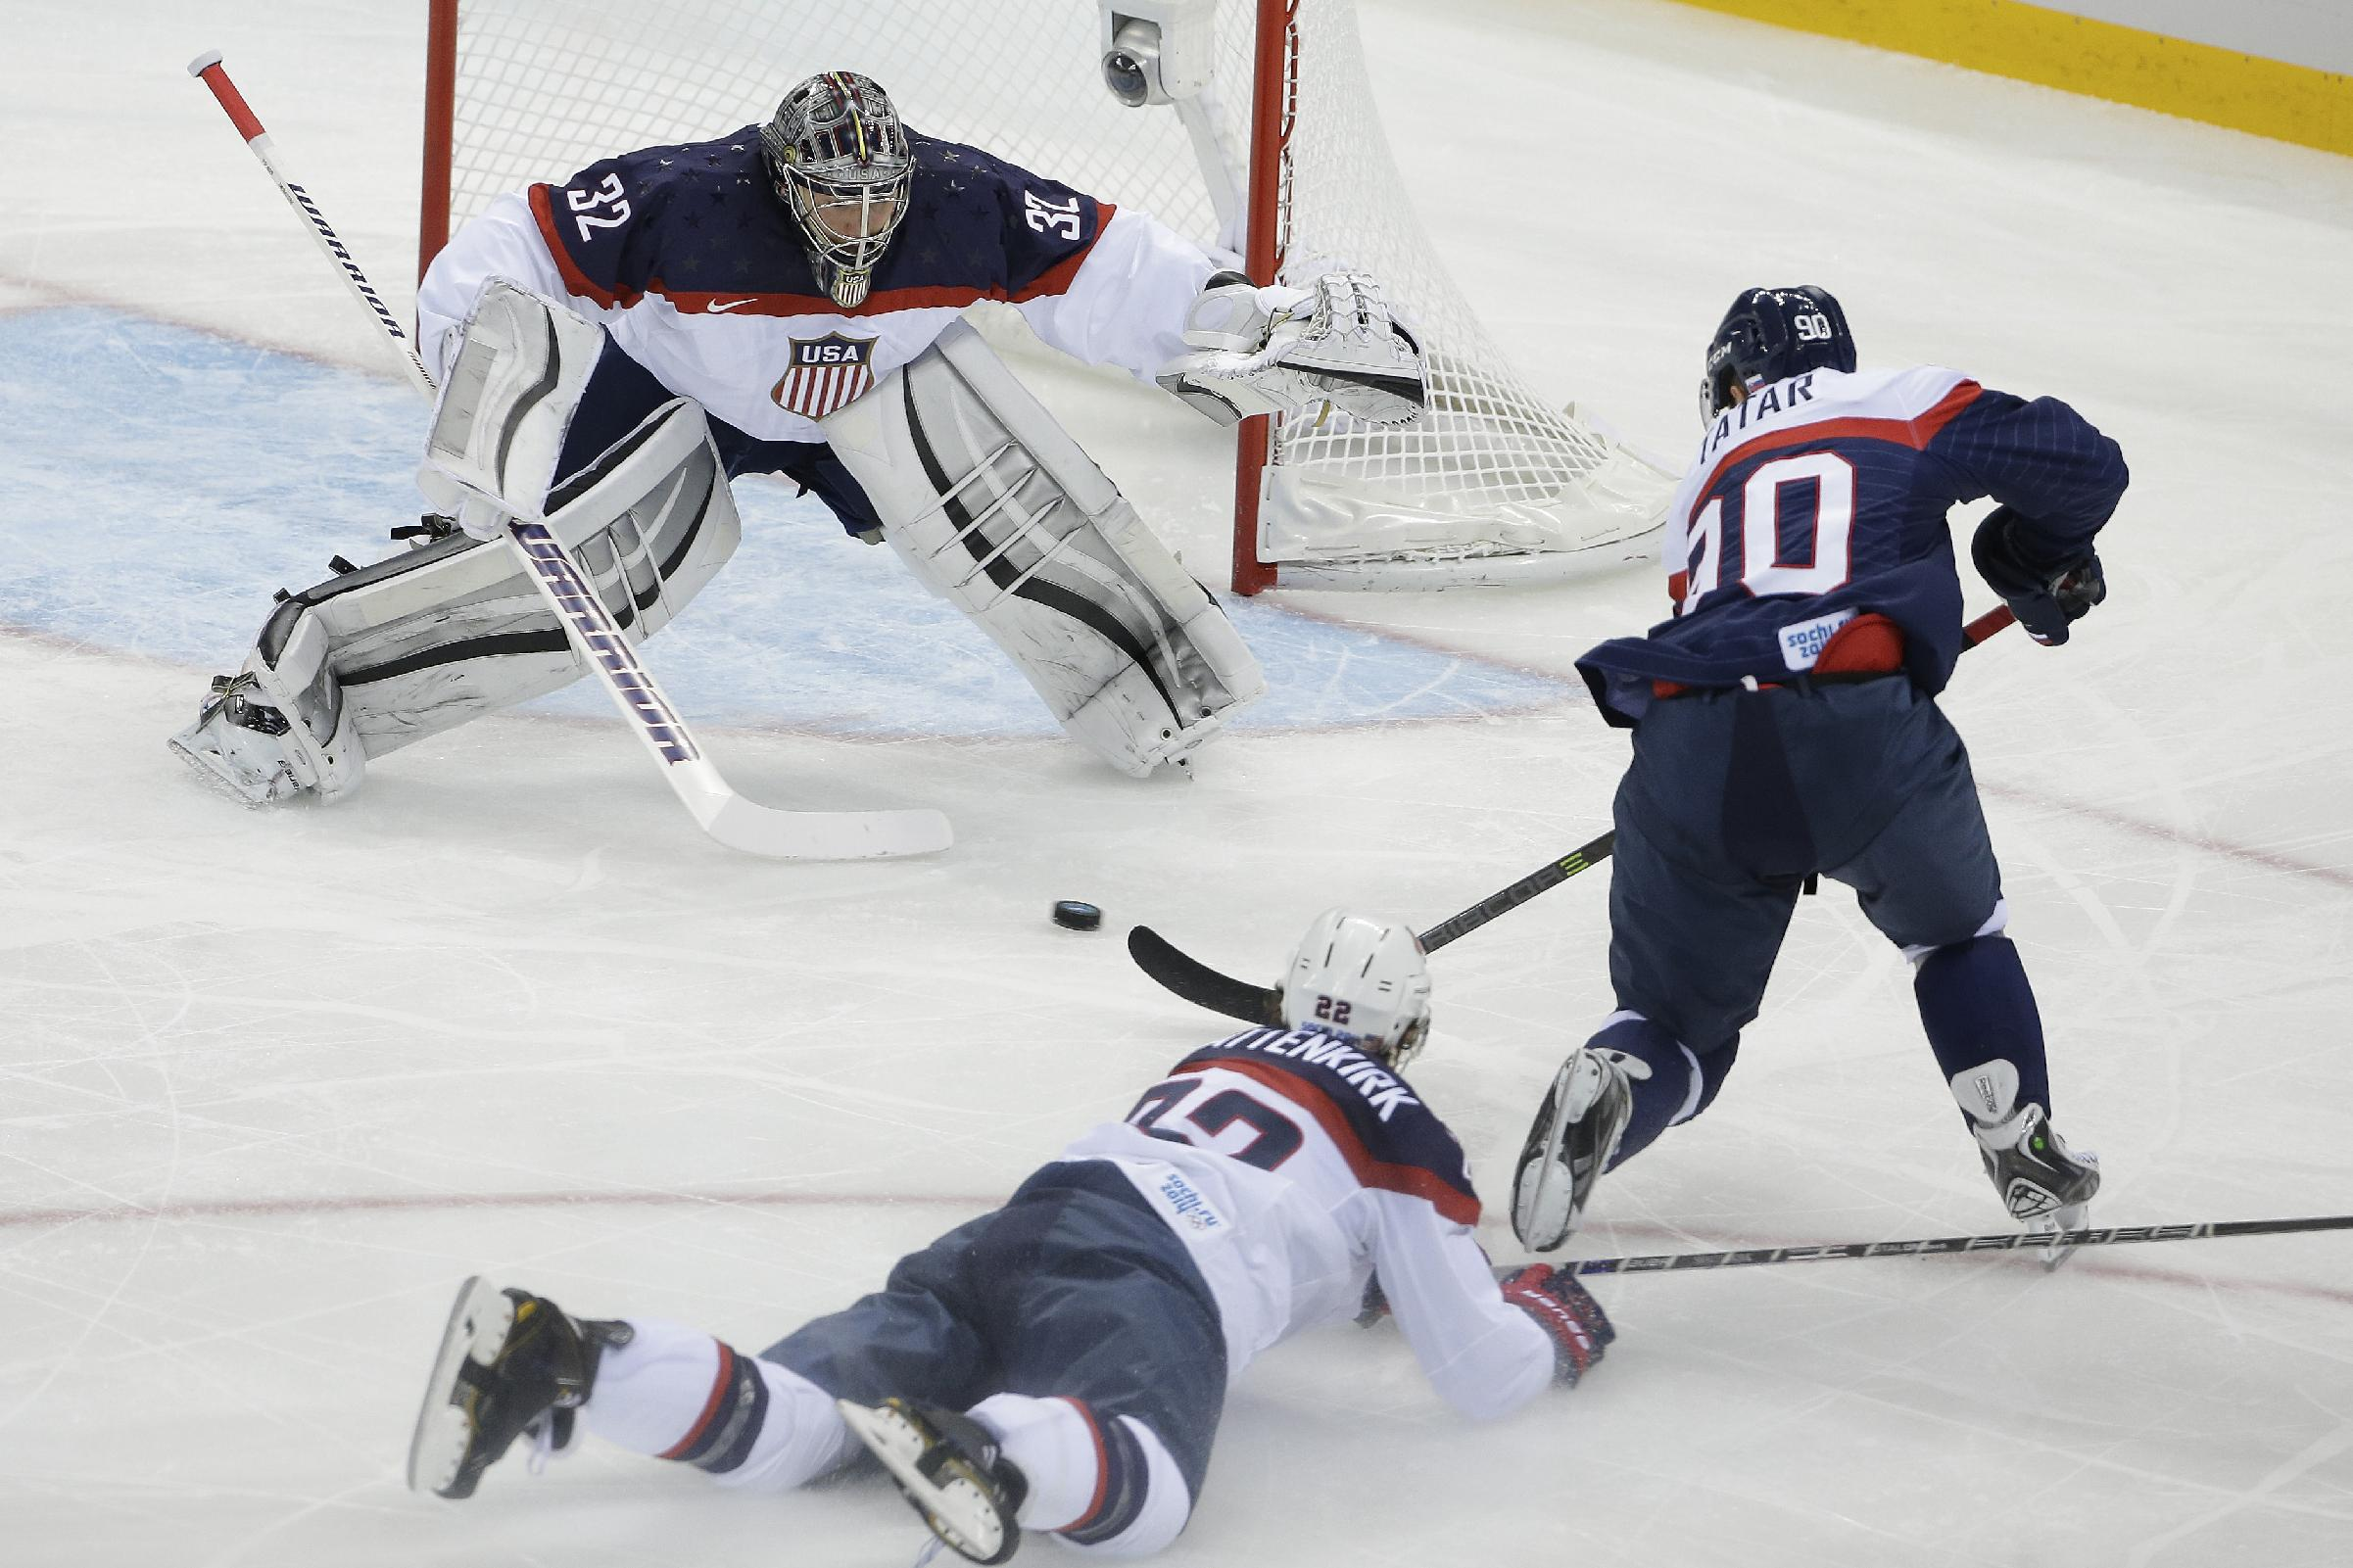 Quick in goal again as US revives Russia rivalry